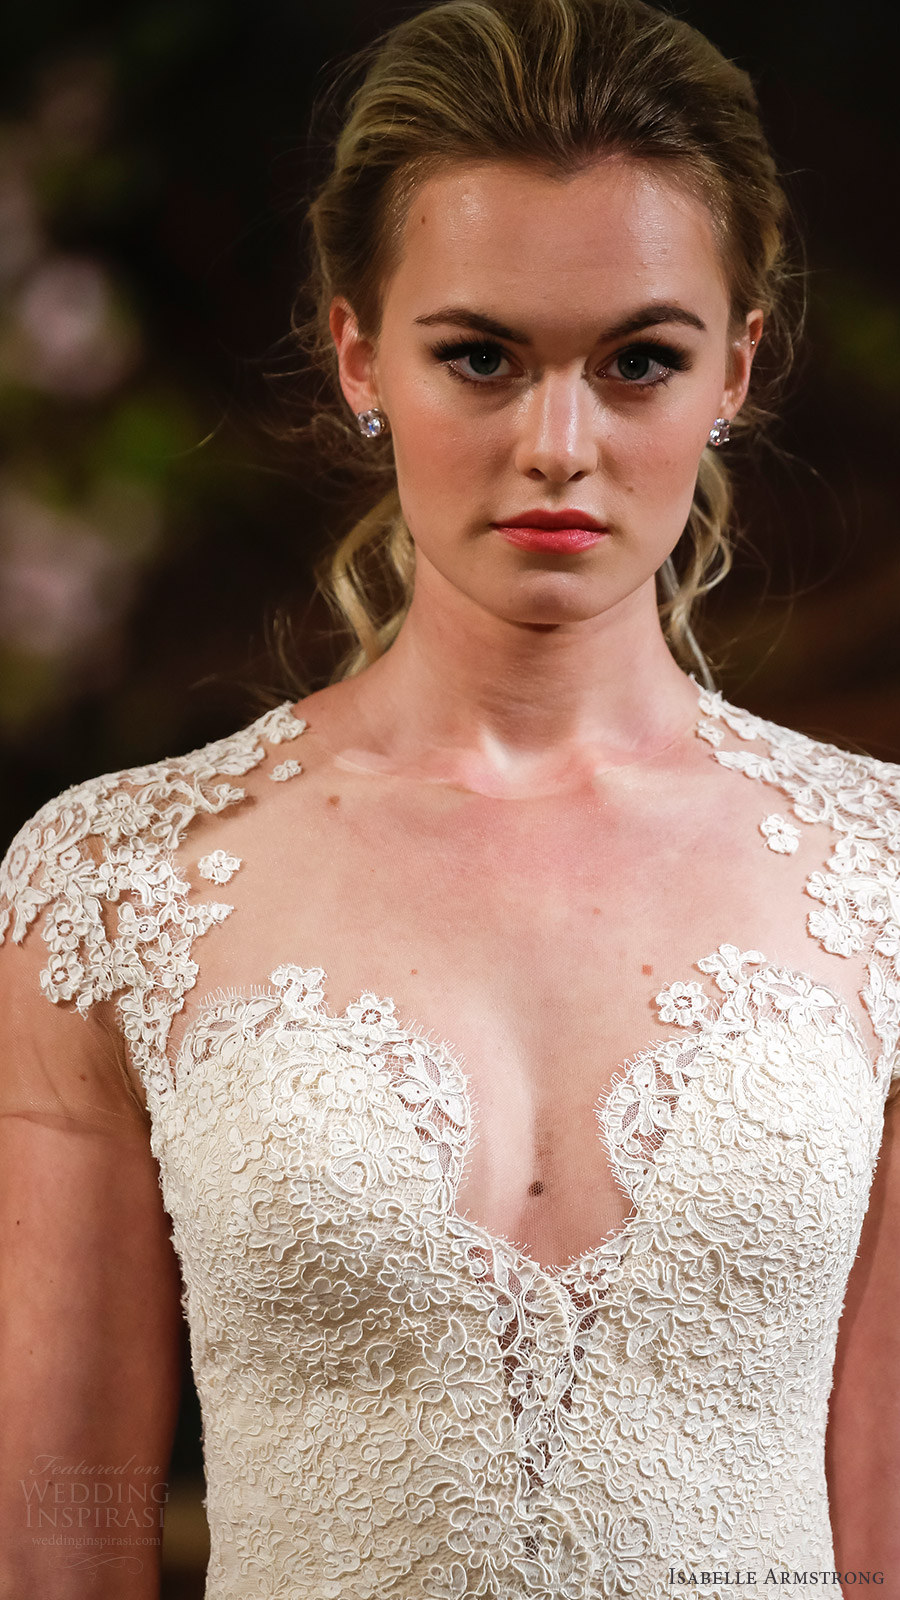 isabelle armstrong bridal spring 2017 cap sleeves sweertheart fit flare wedding dress (toni) zv romantic elegant